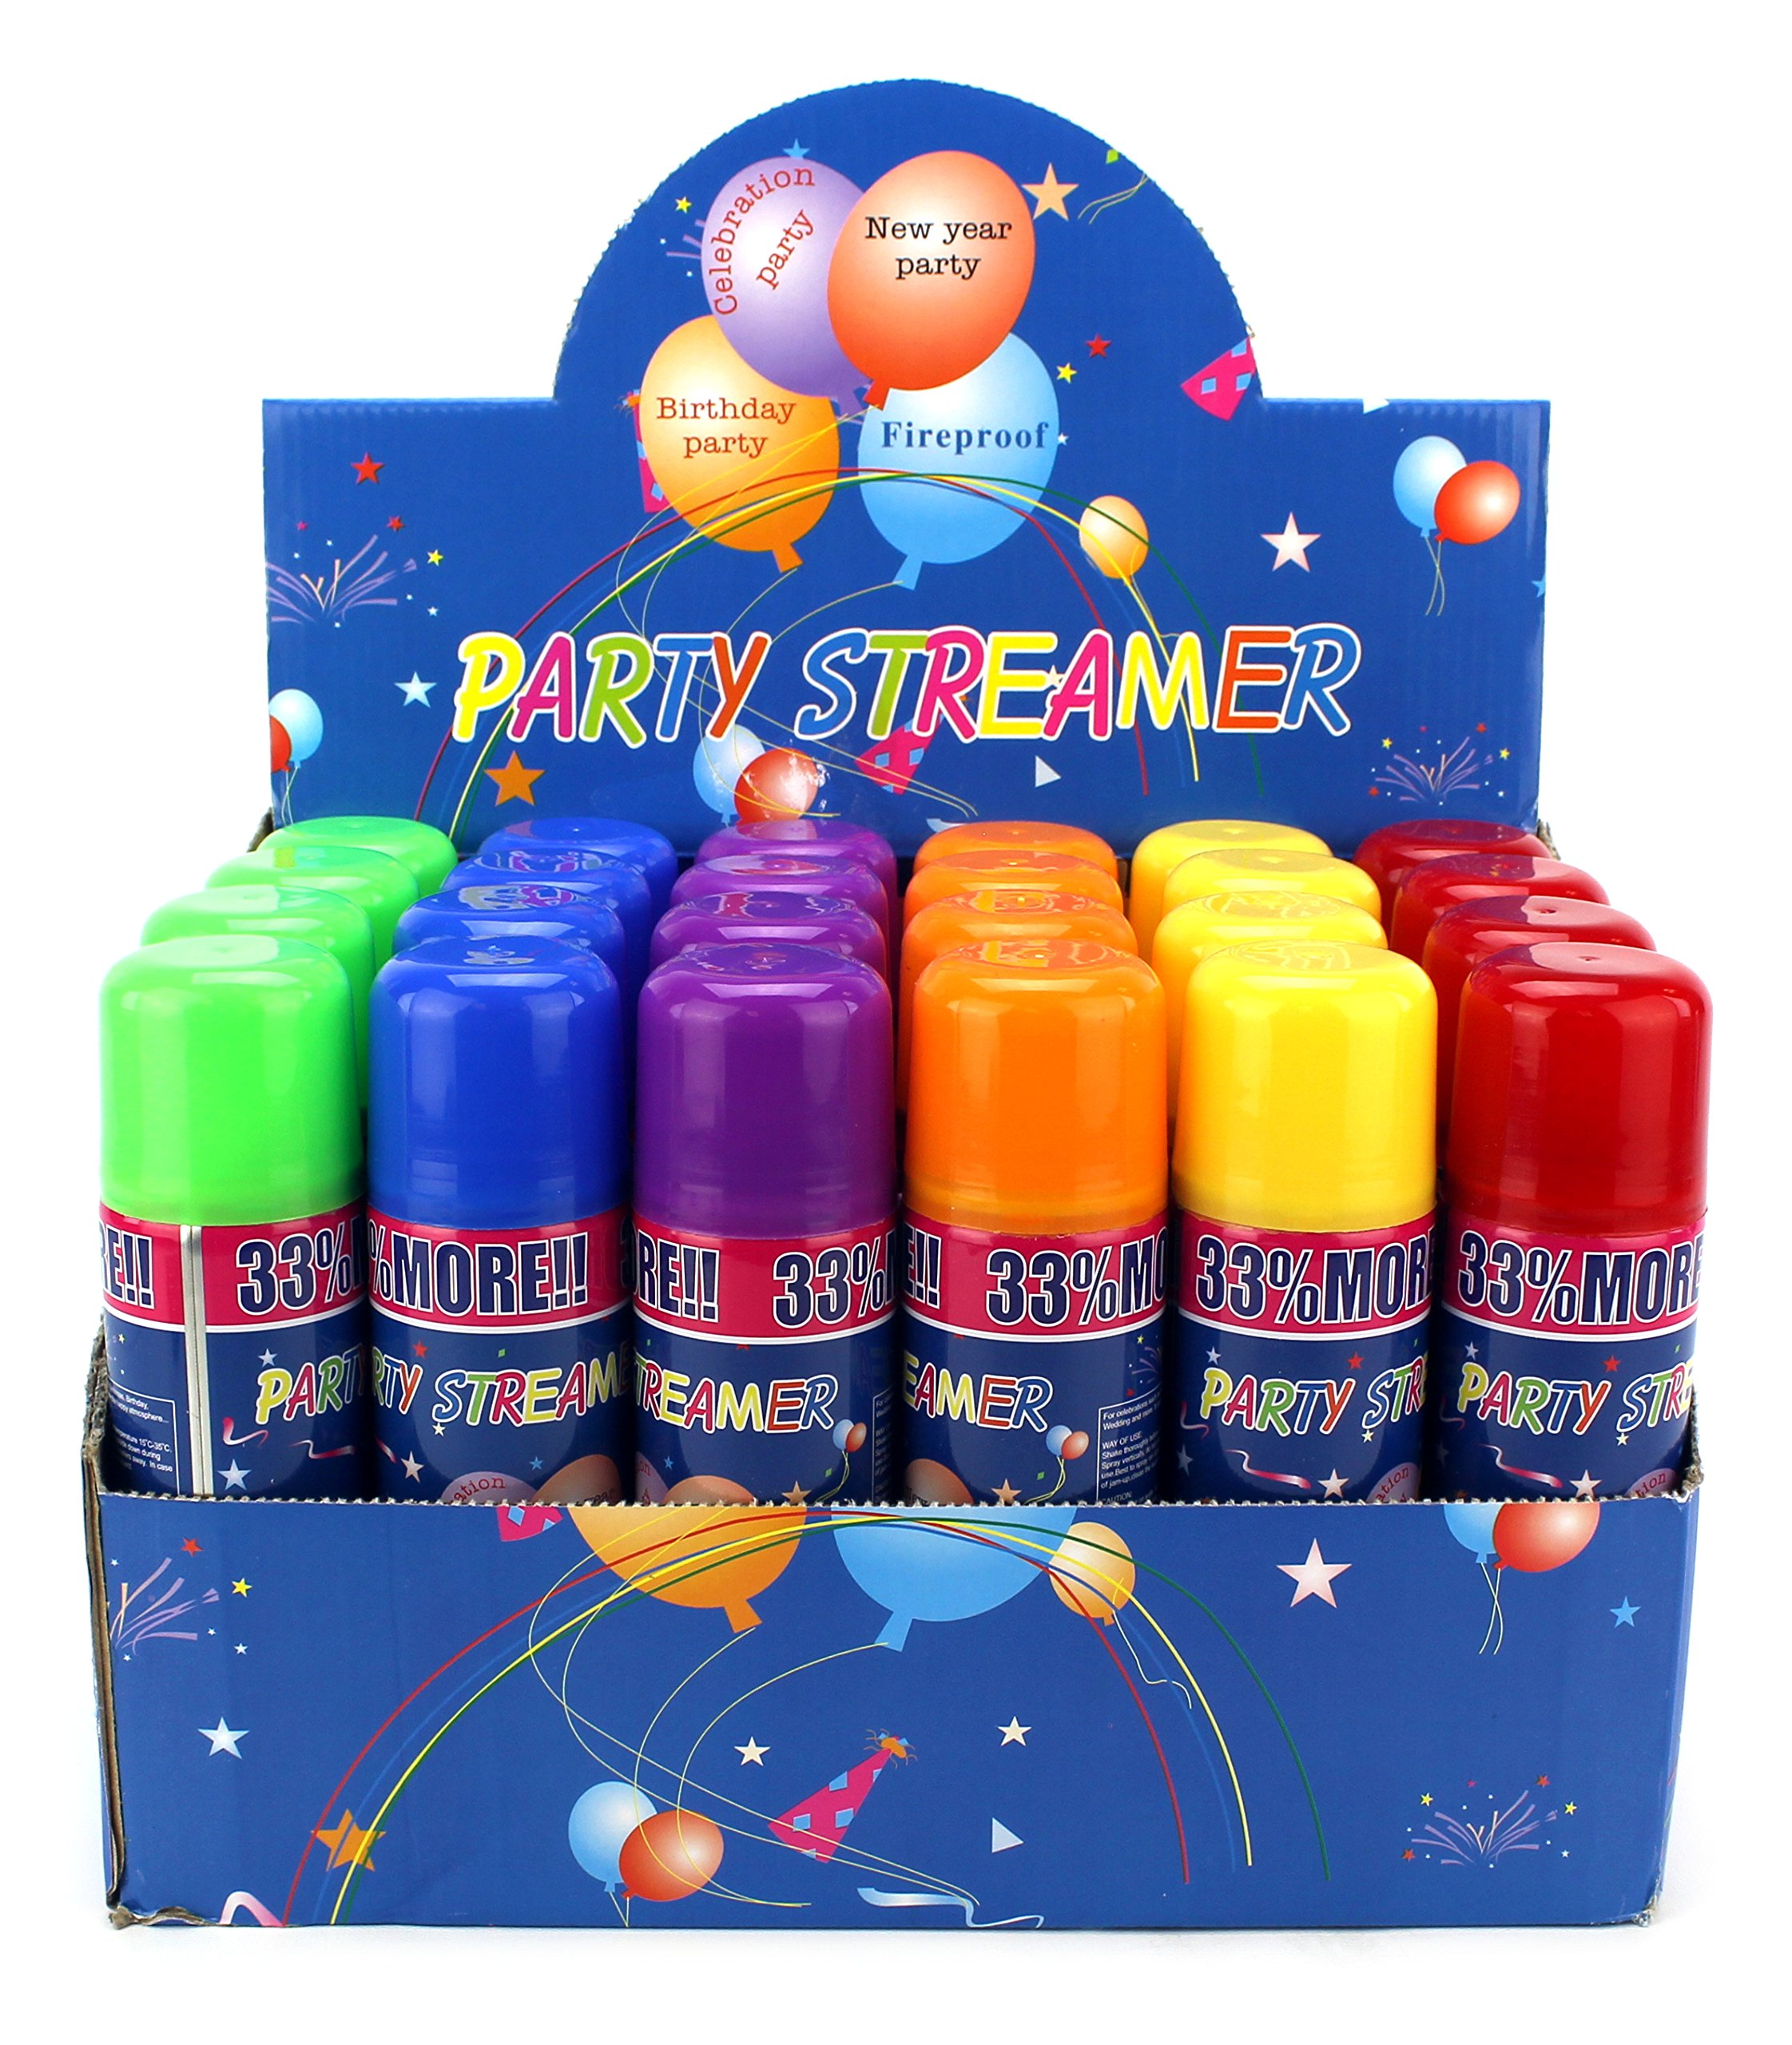 Party Streamer Spray String in a Can Children's Kid's Party Supplies, Perfect for Parties/Events, 2 Boxes of 24 Can